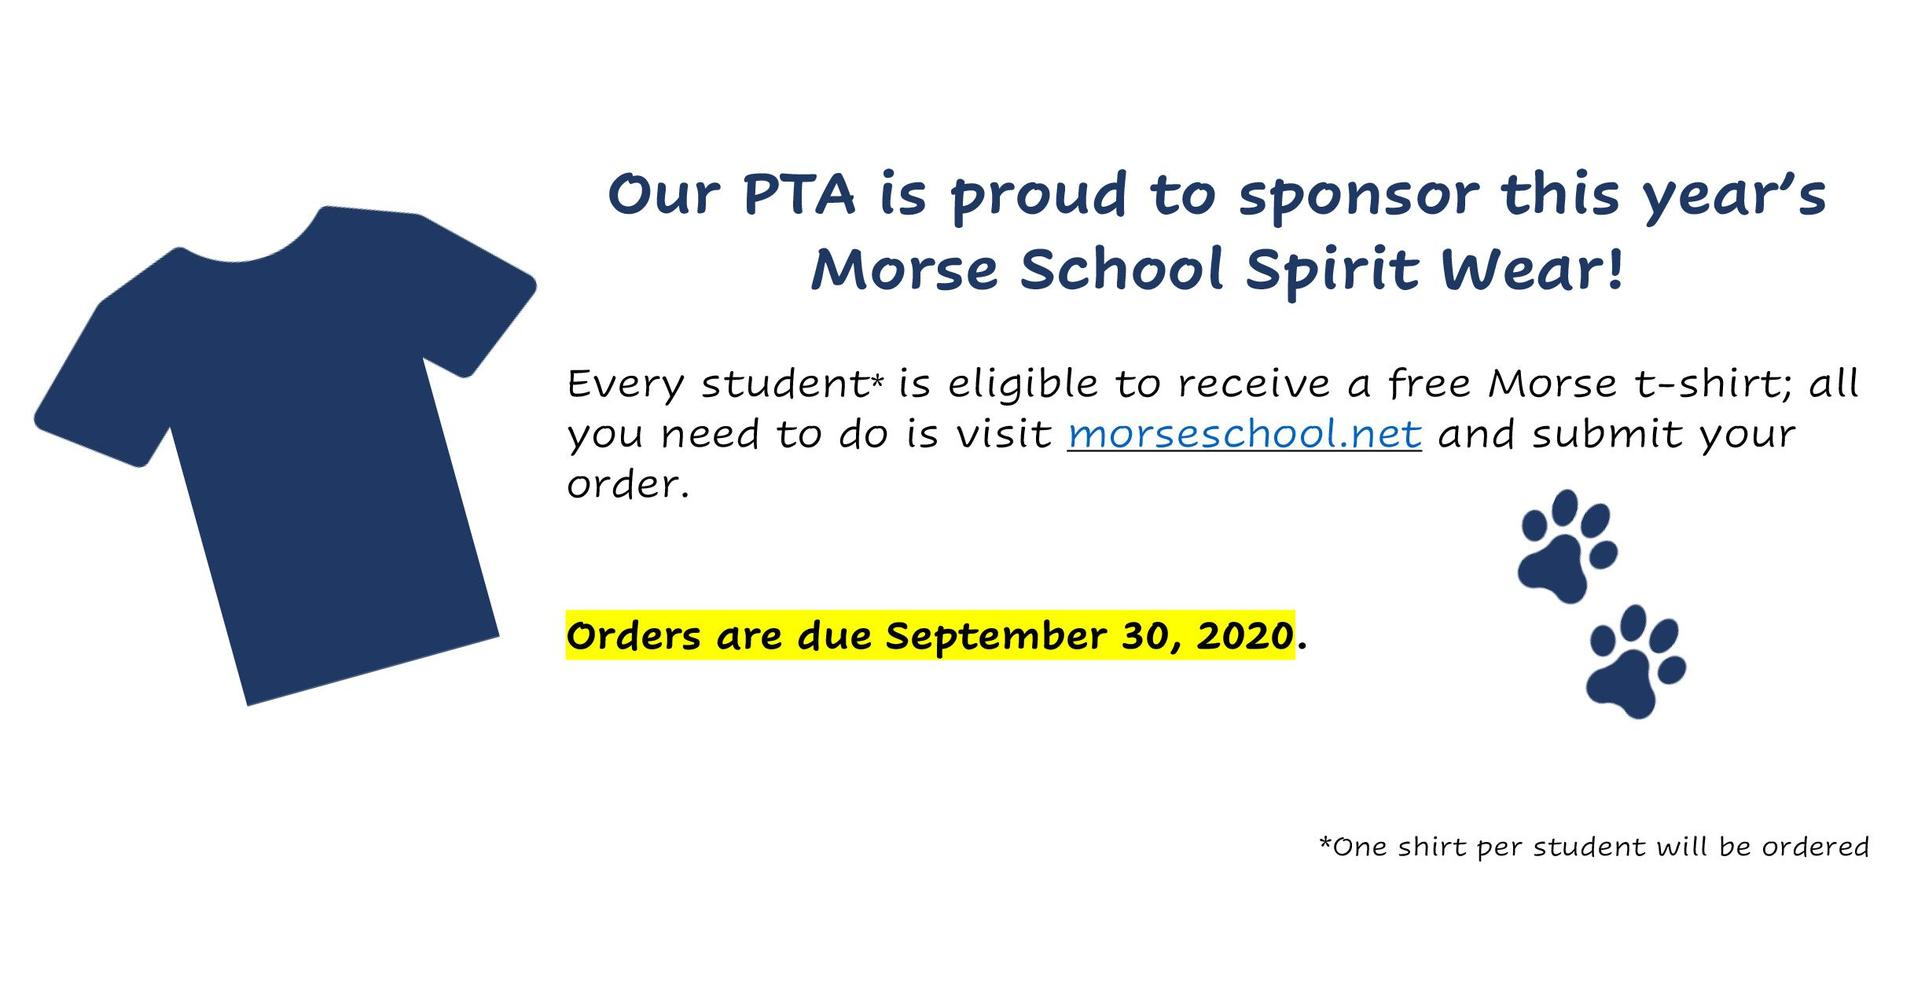 Our PTA is proud to sponsor this year's Morse School Spirit Wear!